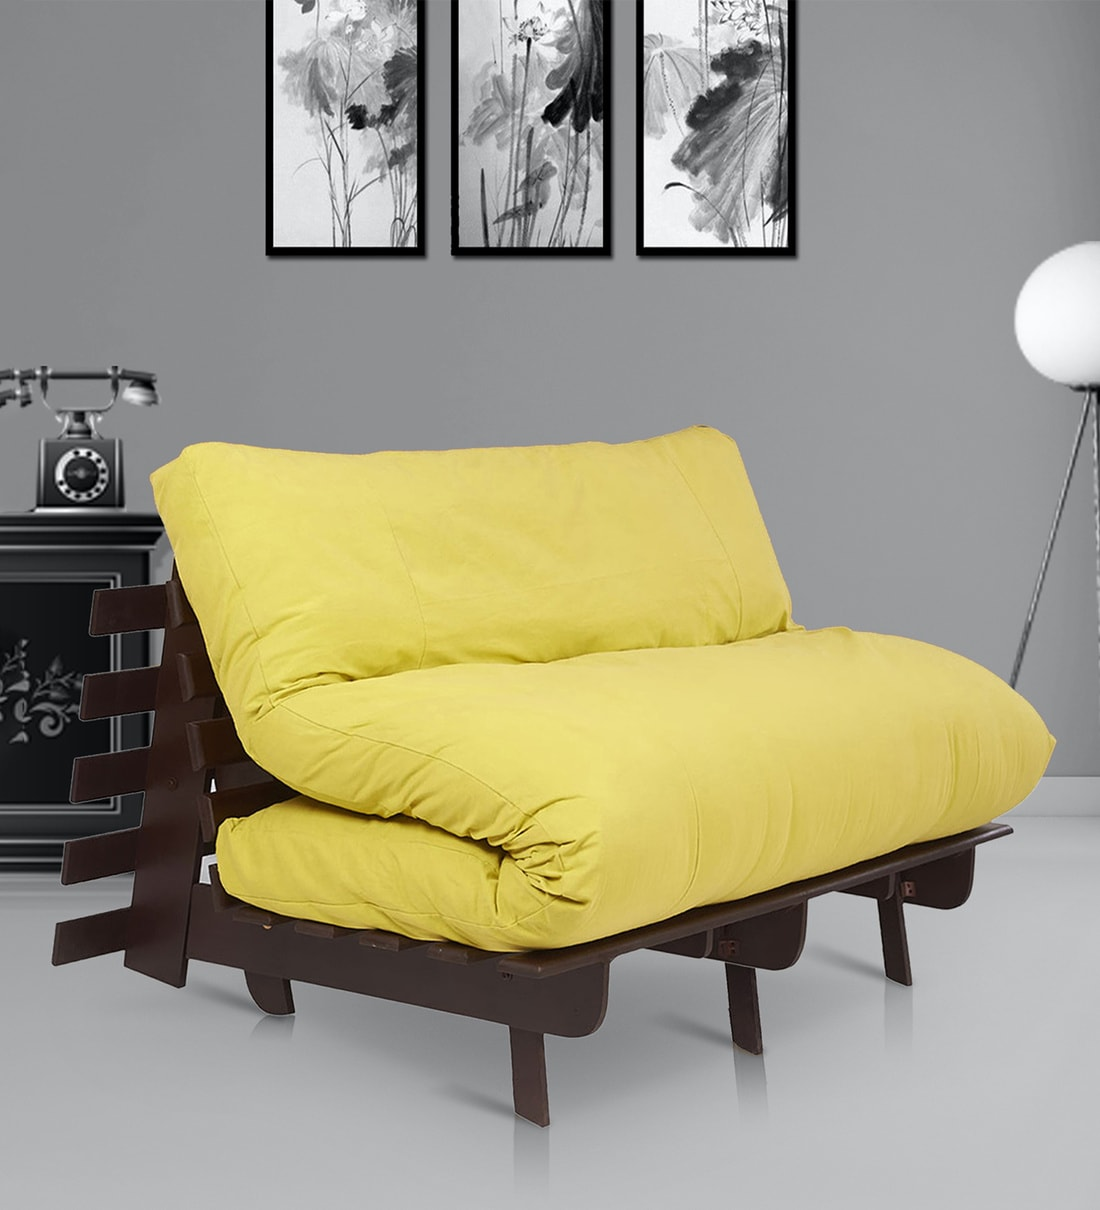 Buy Double Futon Sofa Cum Bed With Mattress In Lemon Yellow Colour By Arra Online Double Futons Futons Furniture Pepperfry Product